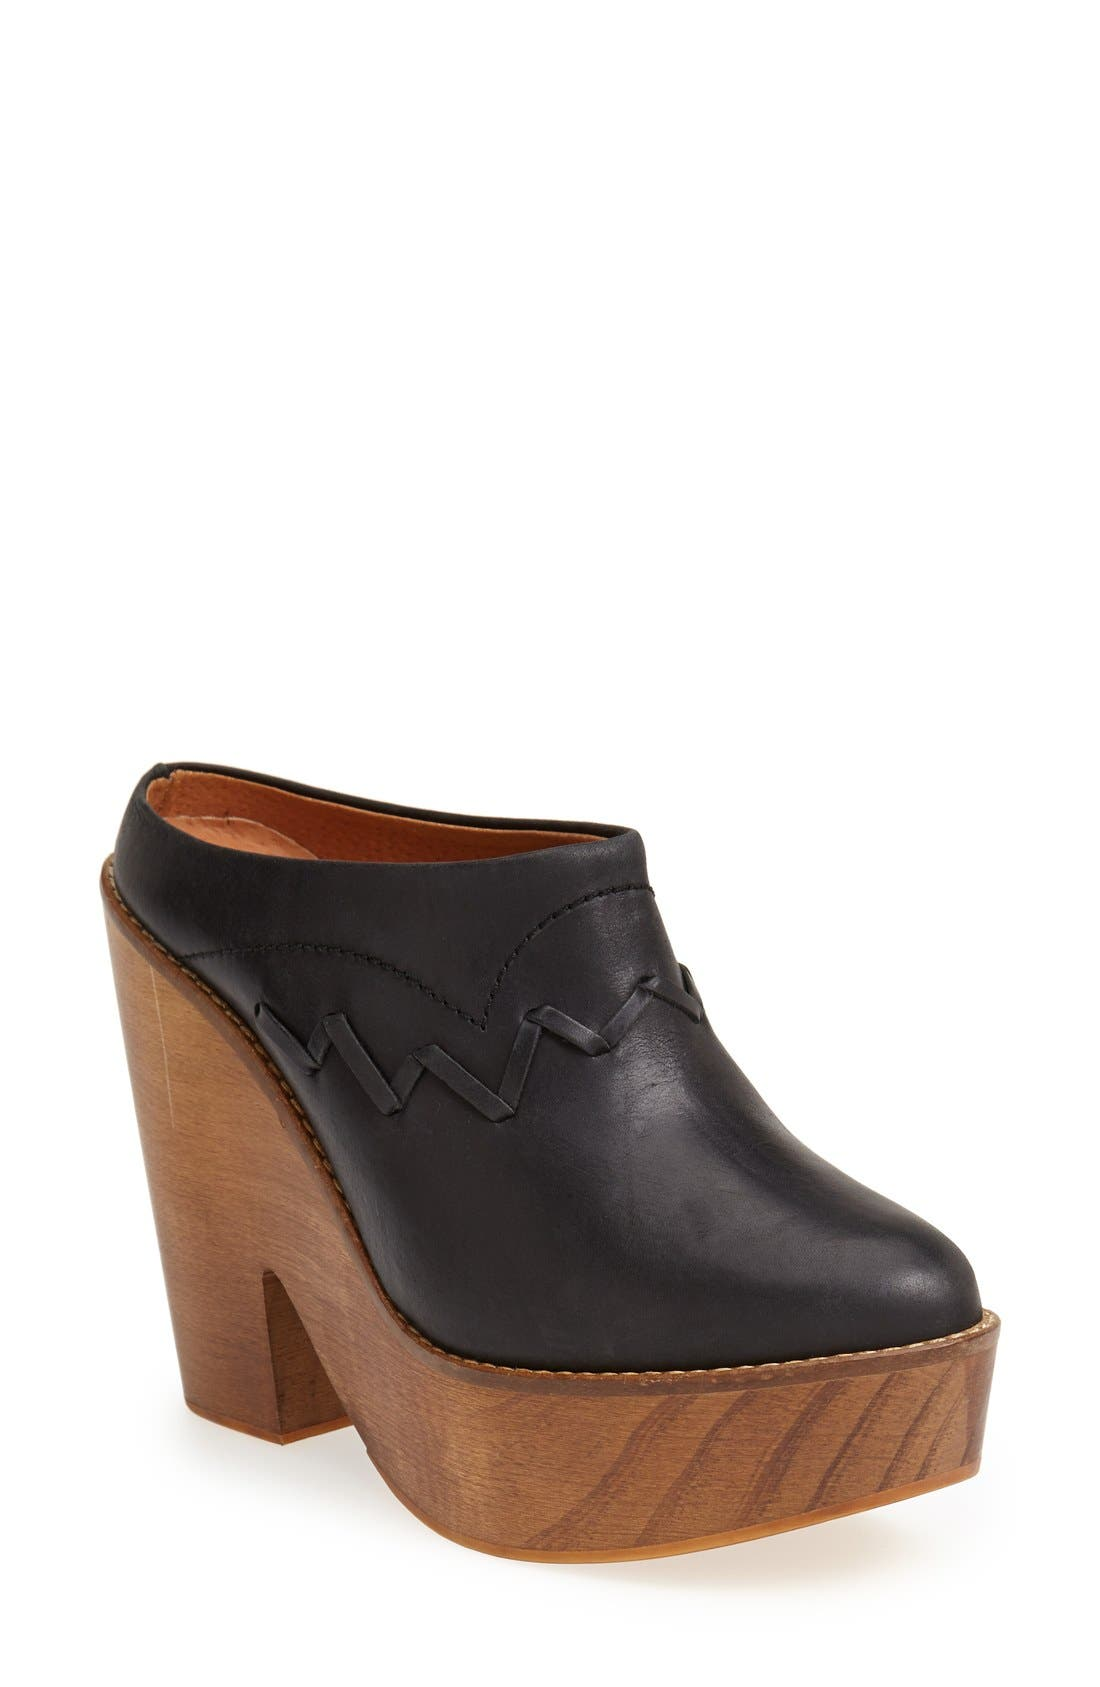 Main Image - Free People 'Chance' Platform Clog (Women)